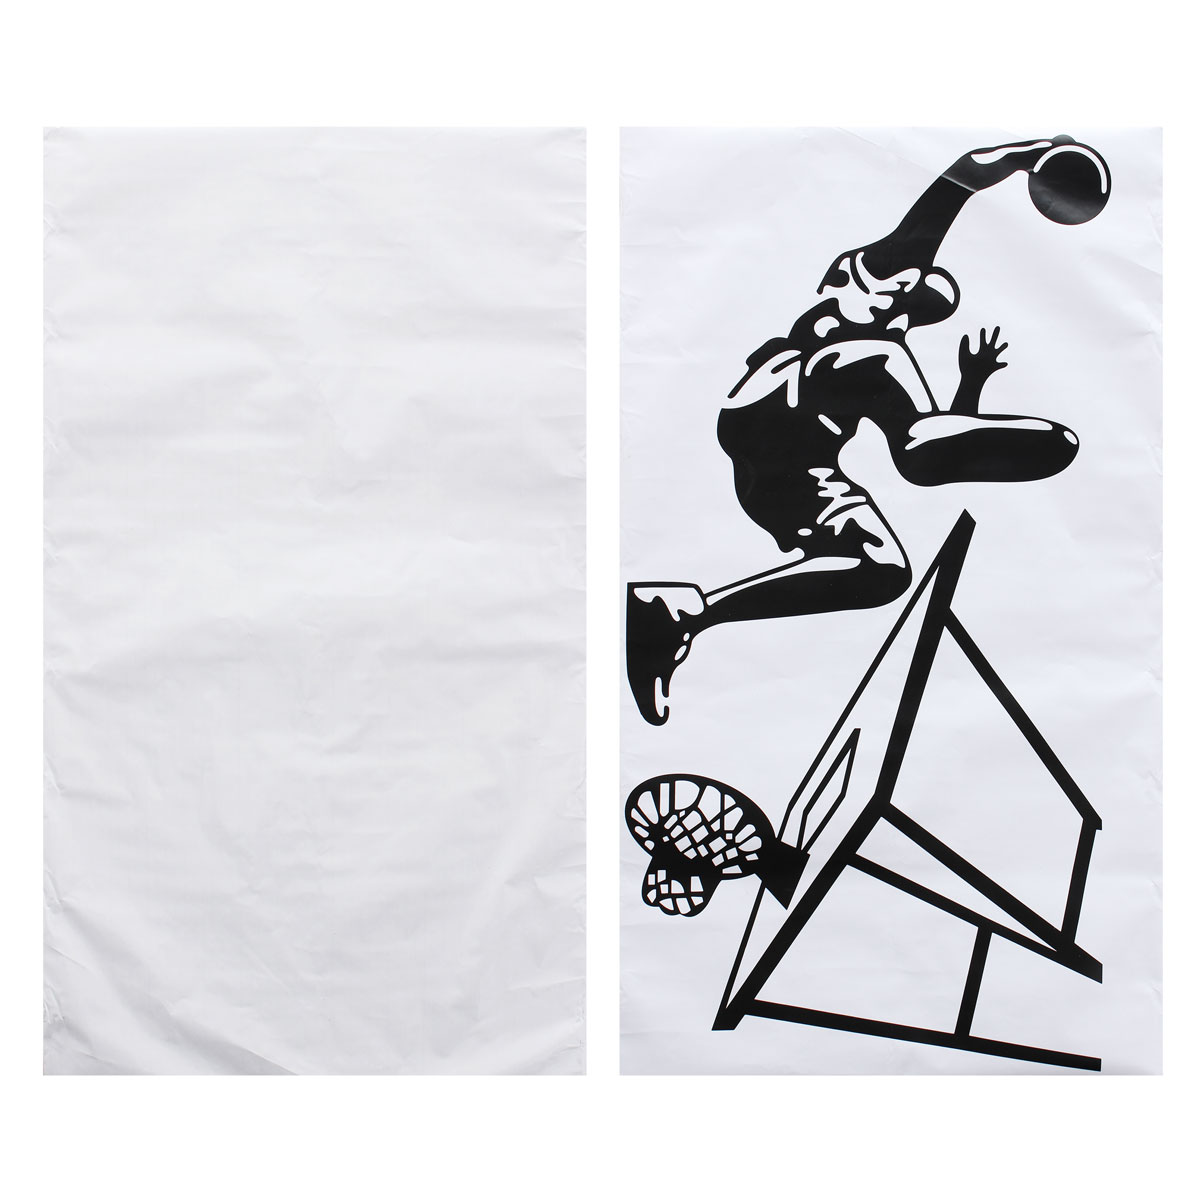 60X100CM Dunk Basketball Player Wall Sticker Removable Sports Basketball Decal Home Room Wall Decor